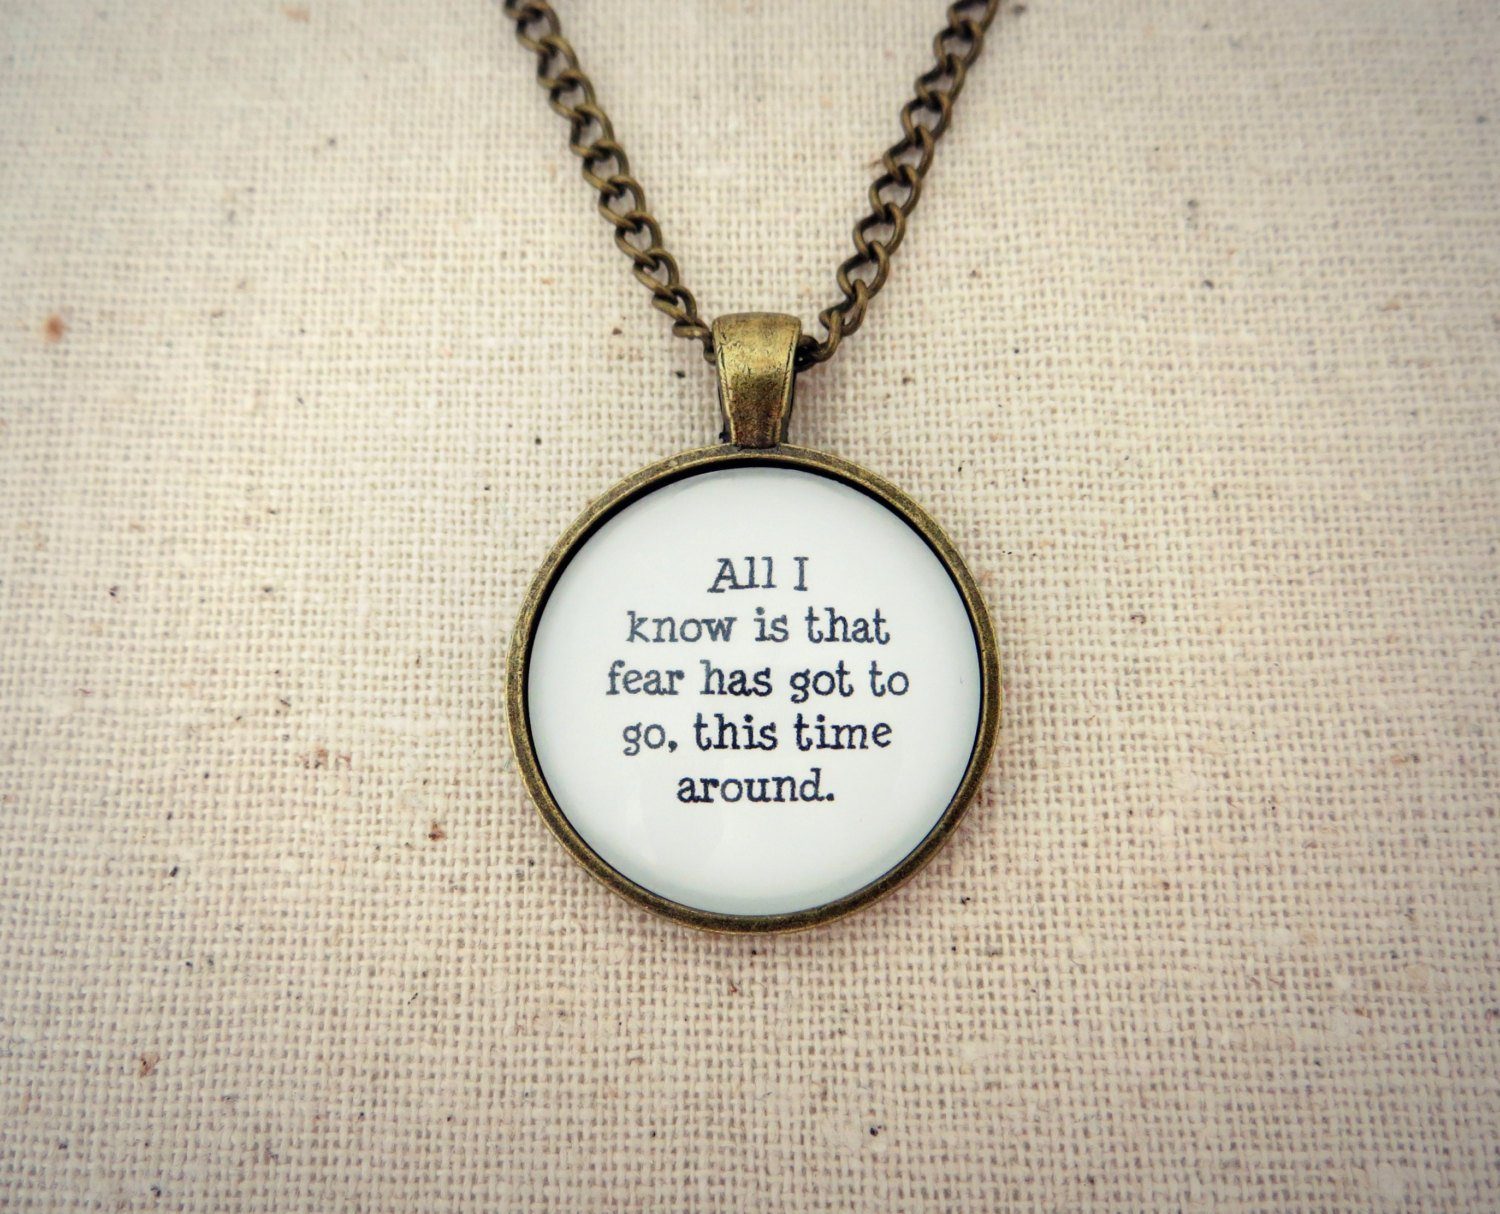 Hanson This Time Around Inspired Lyrical Quote Pendant Necklace (Brass, 18 inches)